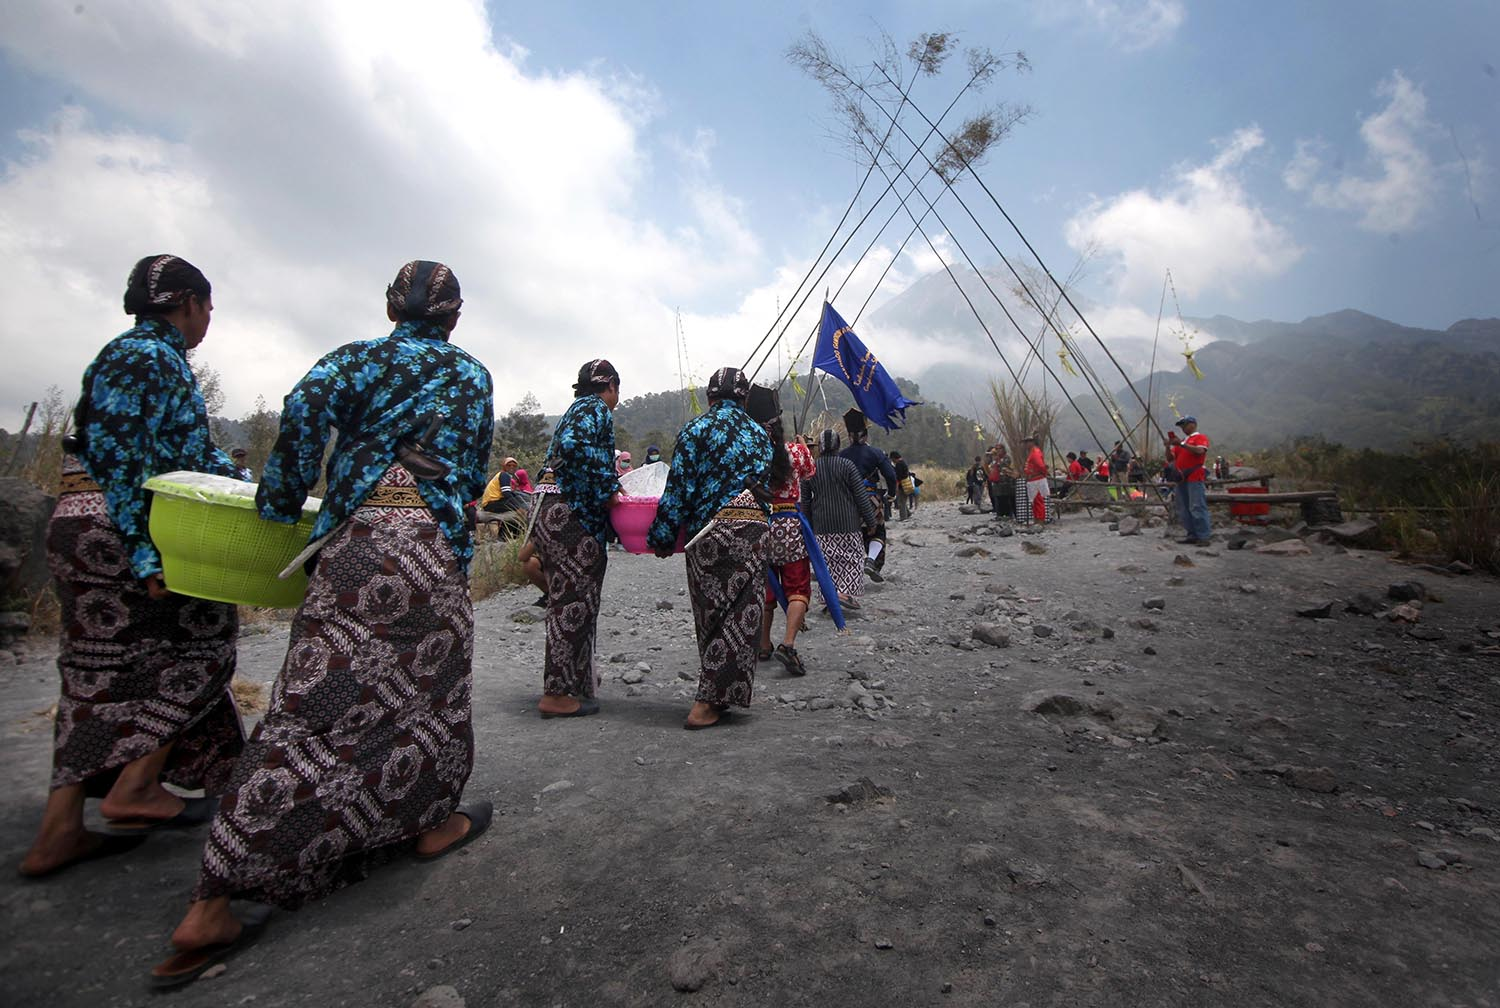 Residents carry food during Merapi Kenduri in Kaliadem Village, Sleman, Central Java, on Oct. 14, 2019. The village is around 4.5 kilometers away from the top of Mount Merapi. JP/Boy T Harjanto